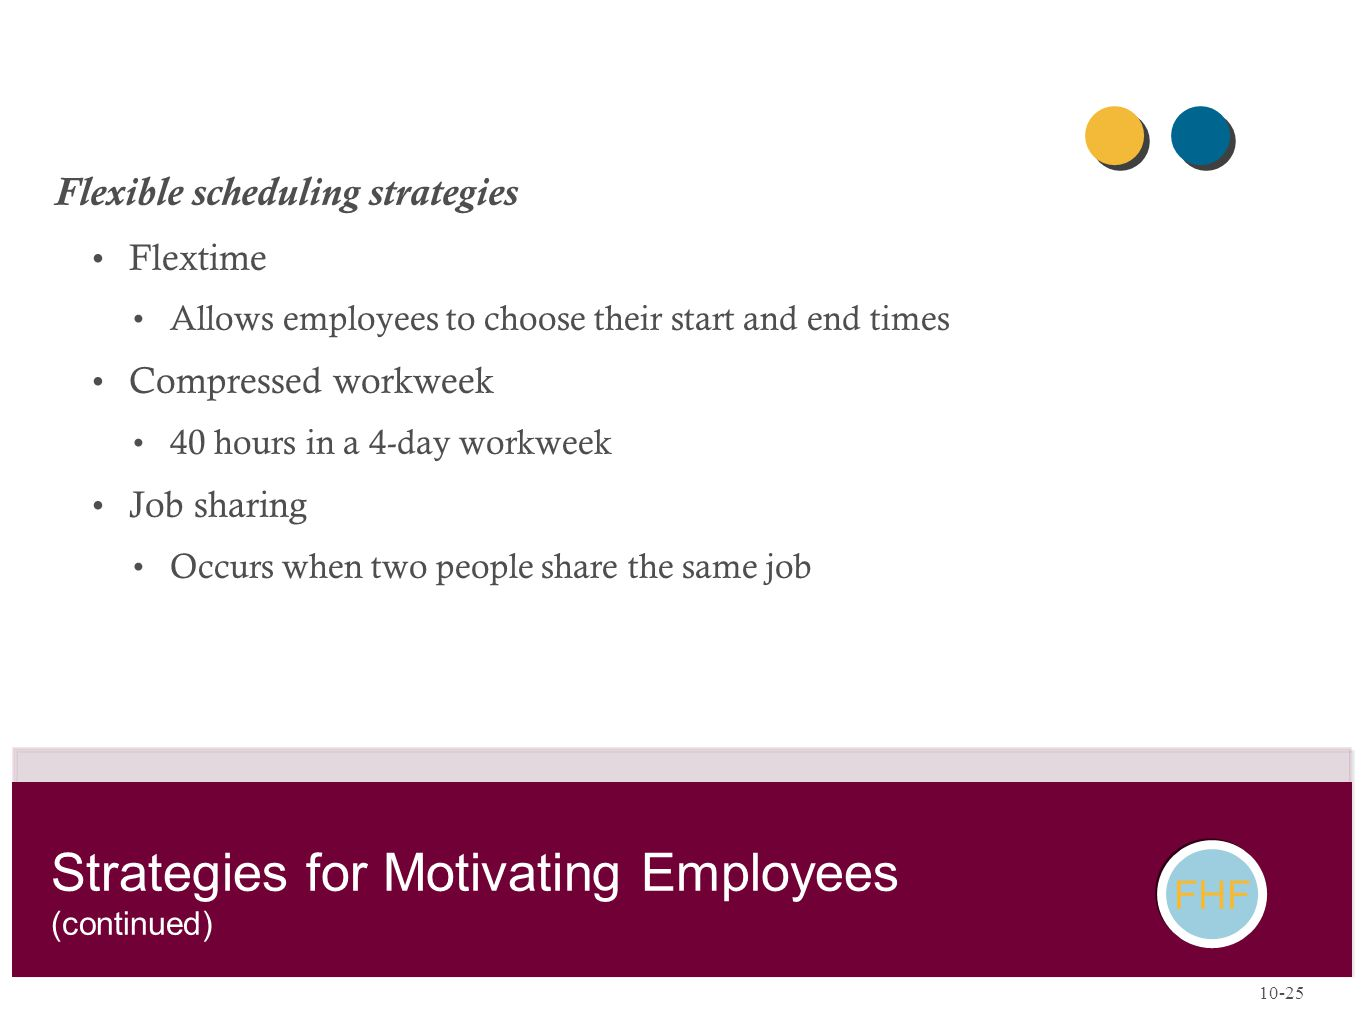 Strategies for Motivating Employees (continued)